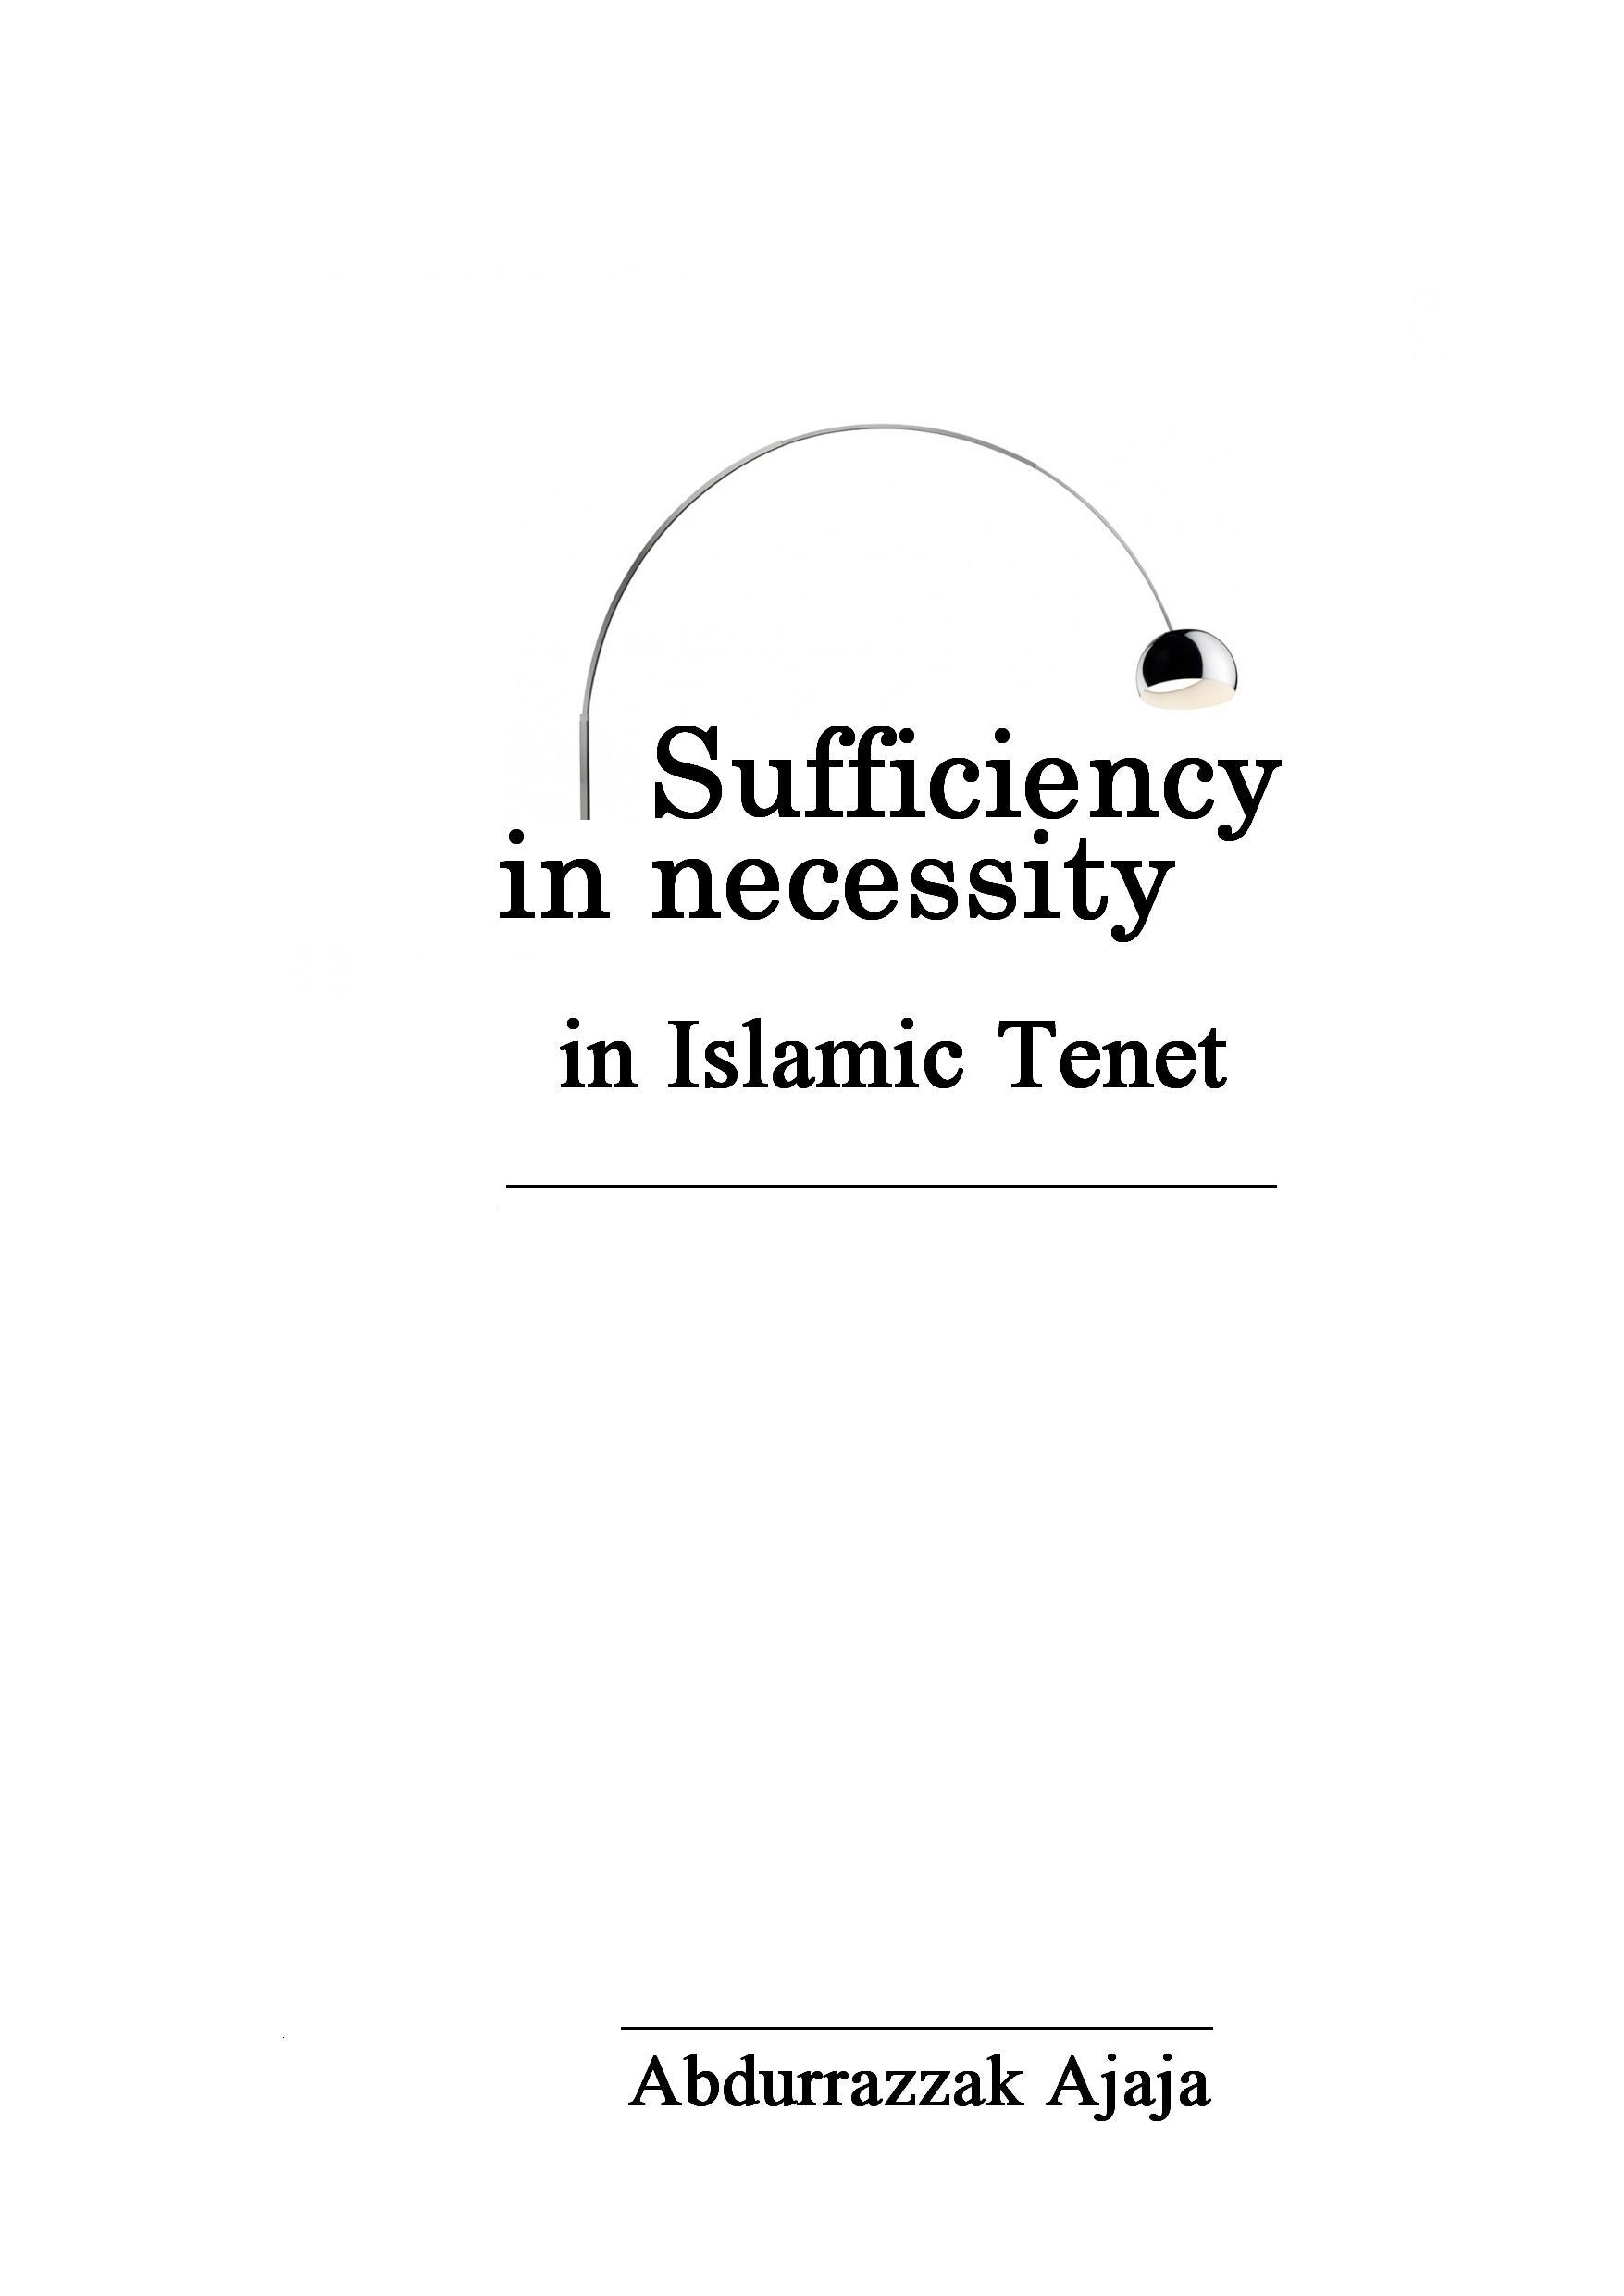 Sufficiency in necessity in Islam